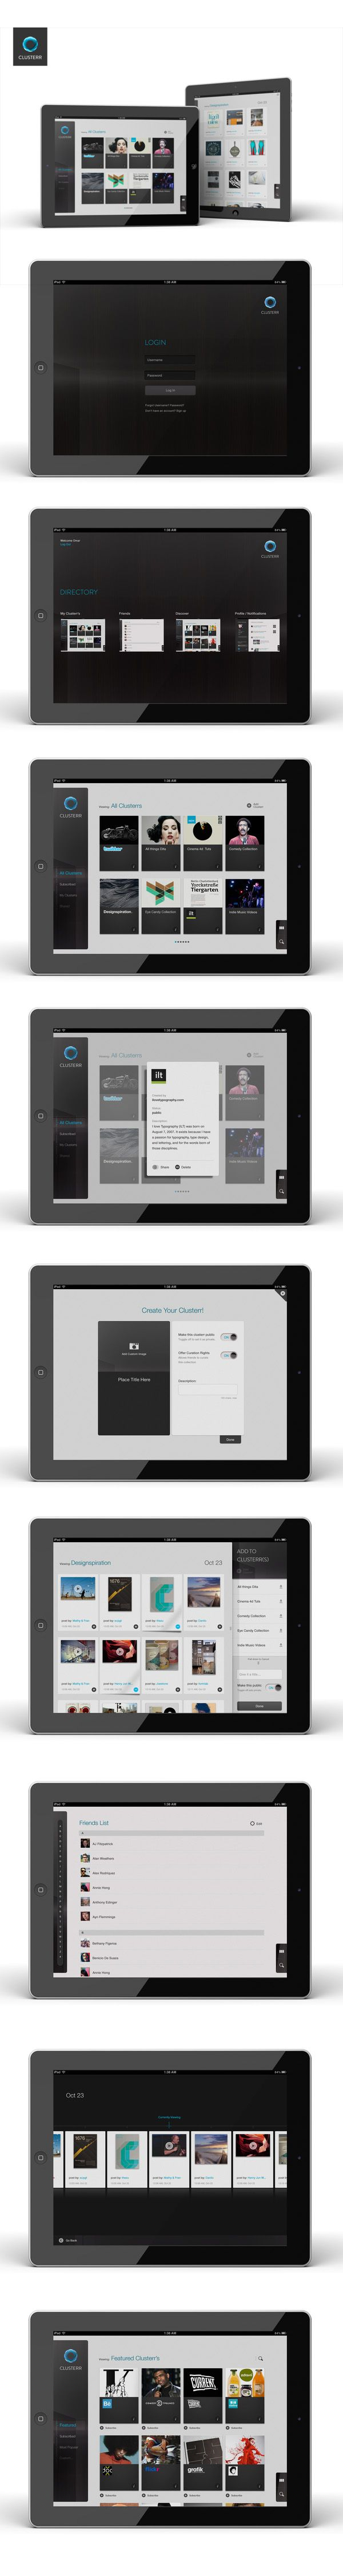 Stay up to date with daily web design news:  http://www.fb.com/mizkowebdesign    Clusterr iPad App / An iPad App for a visualizer for your twitter timeline and acts as a content curation tool    #webdesign #design #designer #inspiration #user #interface #ui #web